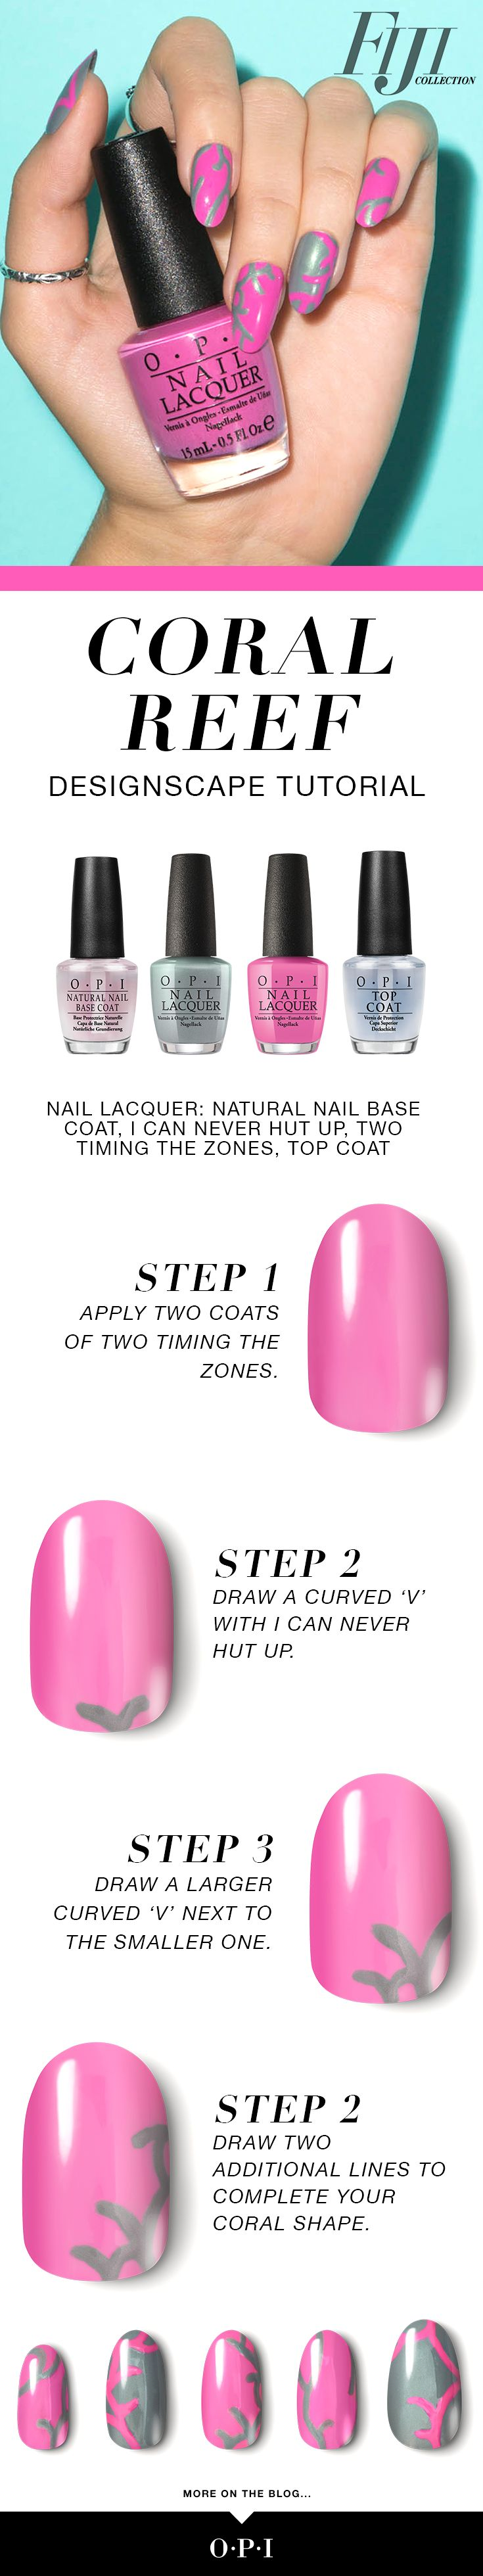 """OPI presents Fiji inspired nail art, """"Coral Reef"""". Try this fun nail art using the new Fiji collection for spring. Step 1: Apply 2 coats of Two Timing The Zones. Step 2: Draw a curved """"V"""" with I Can Never Hut Up. Step 3: Draw a larger curved """"V"""" next to the smaller one. Step 4: Draw 2 additional lines to complete your coral shape."""